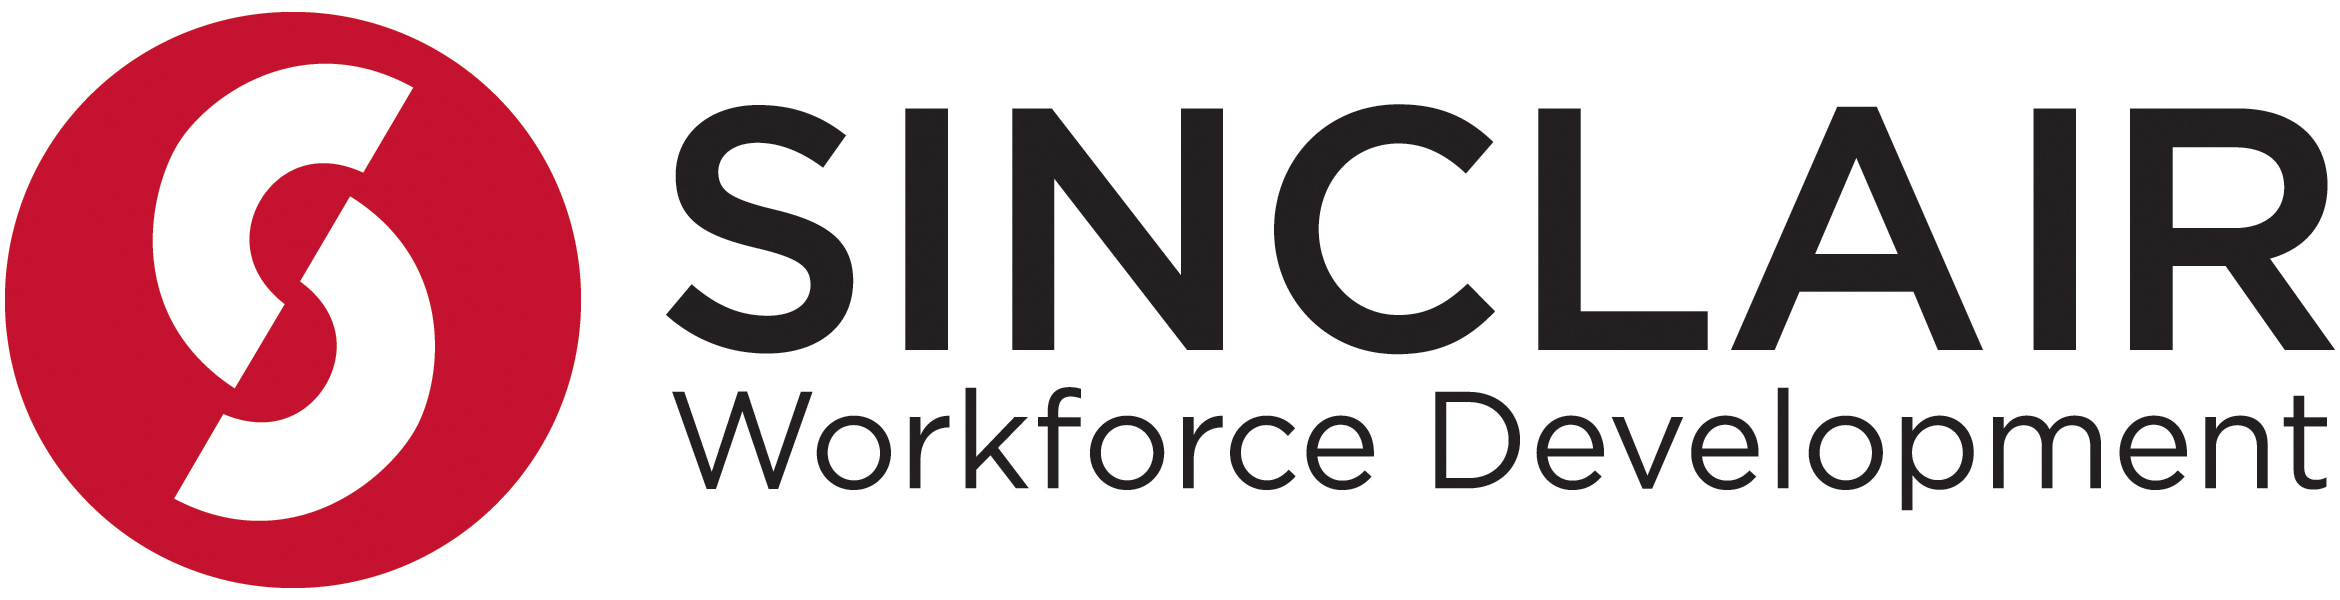 Workforce Logo Horizontal